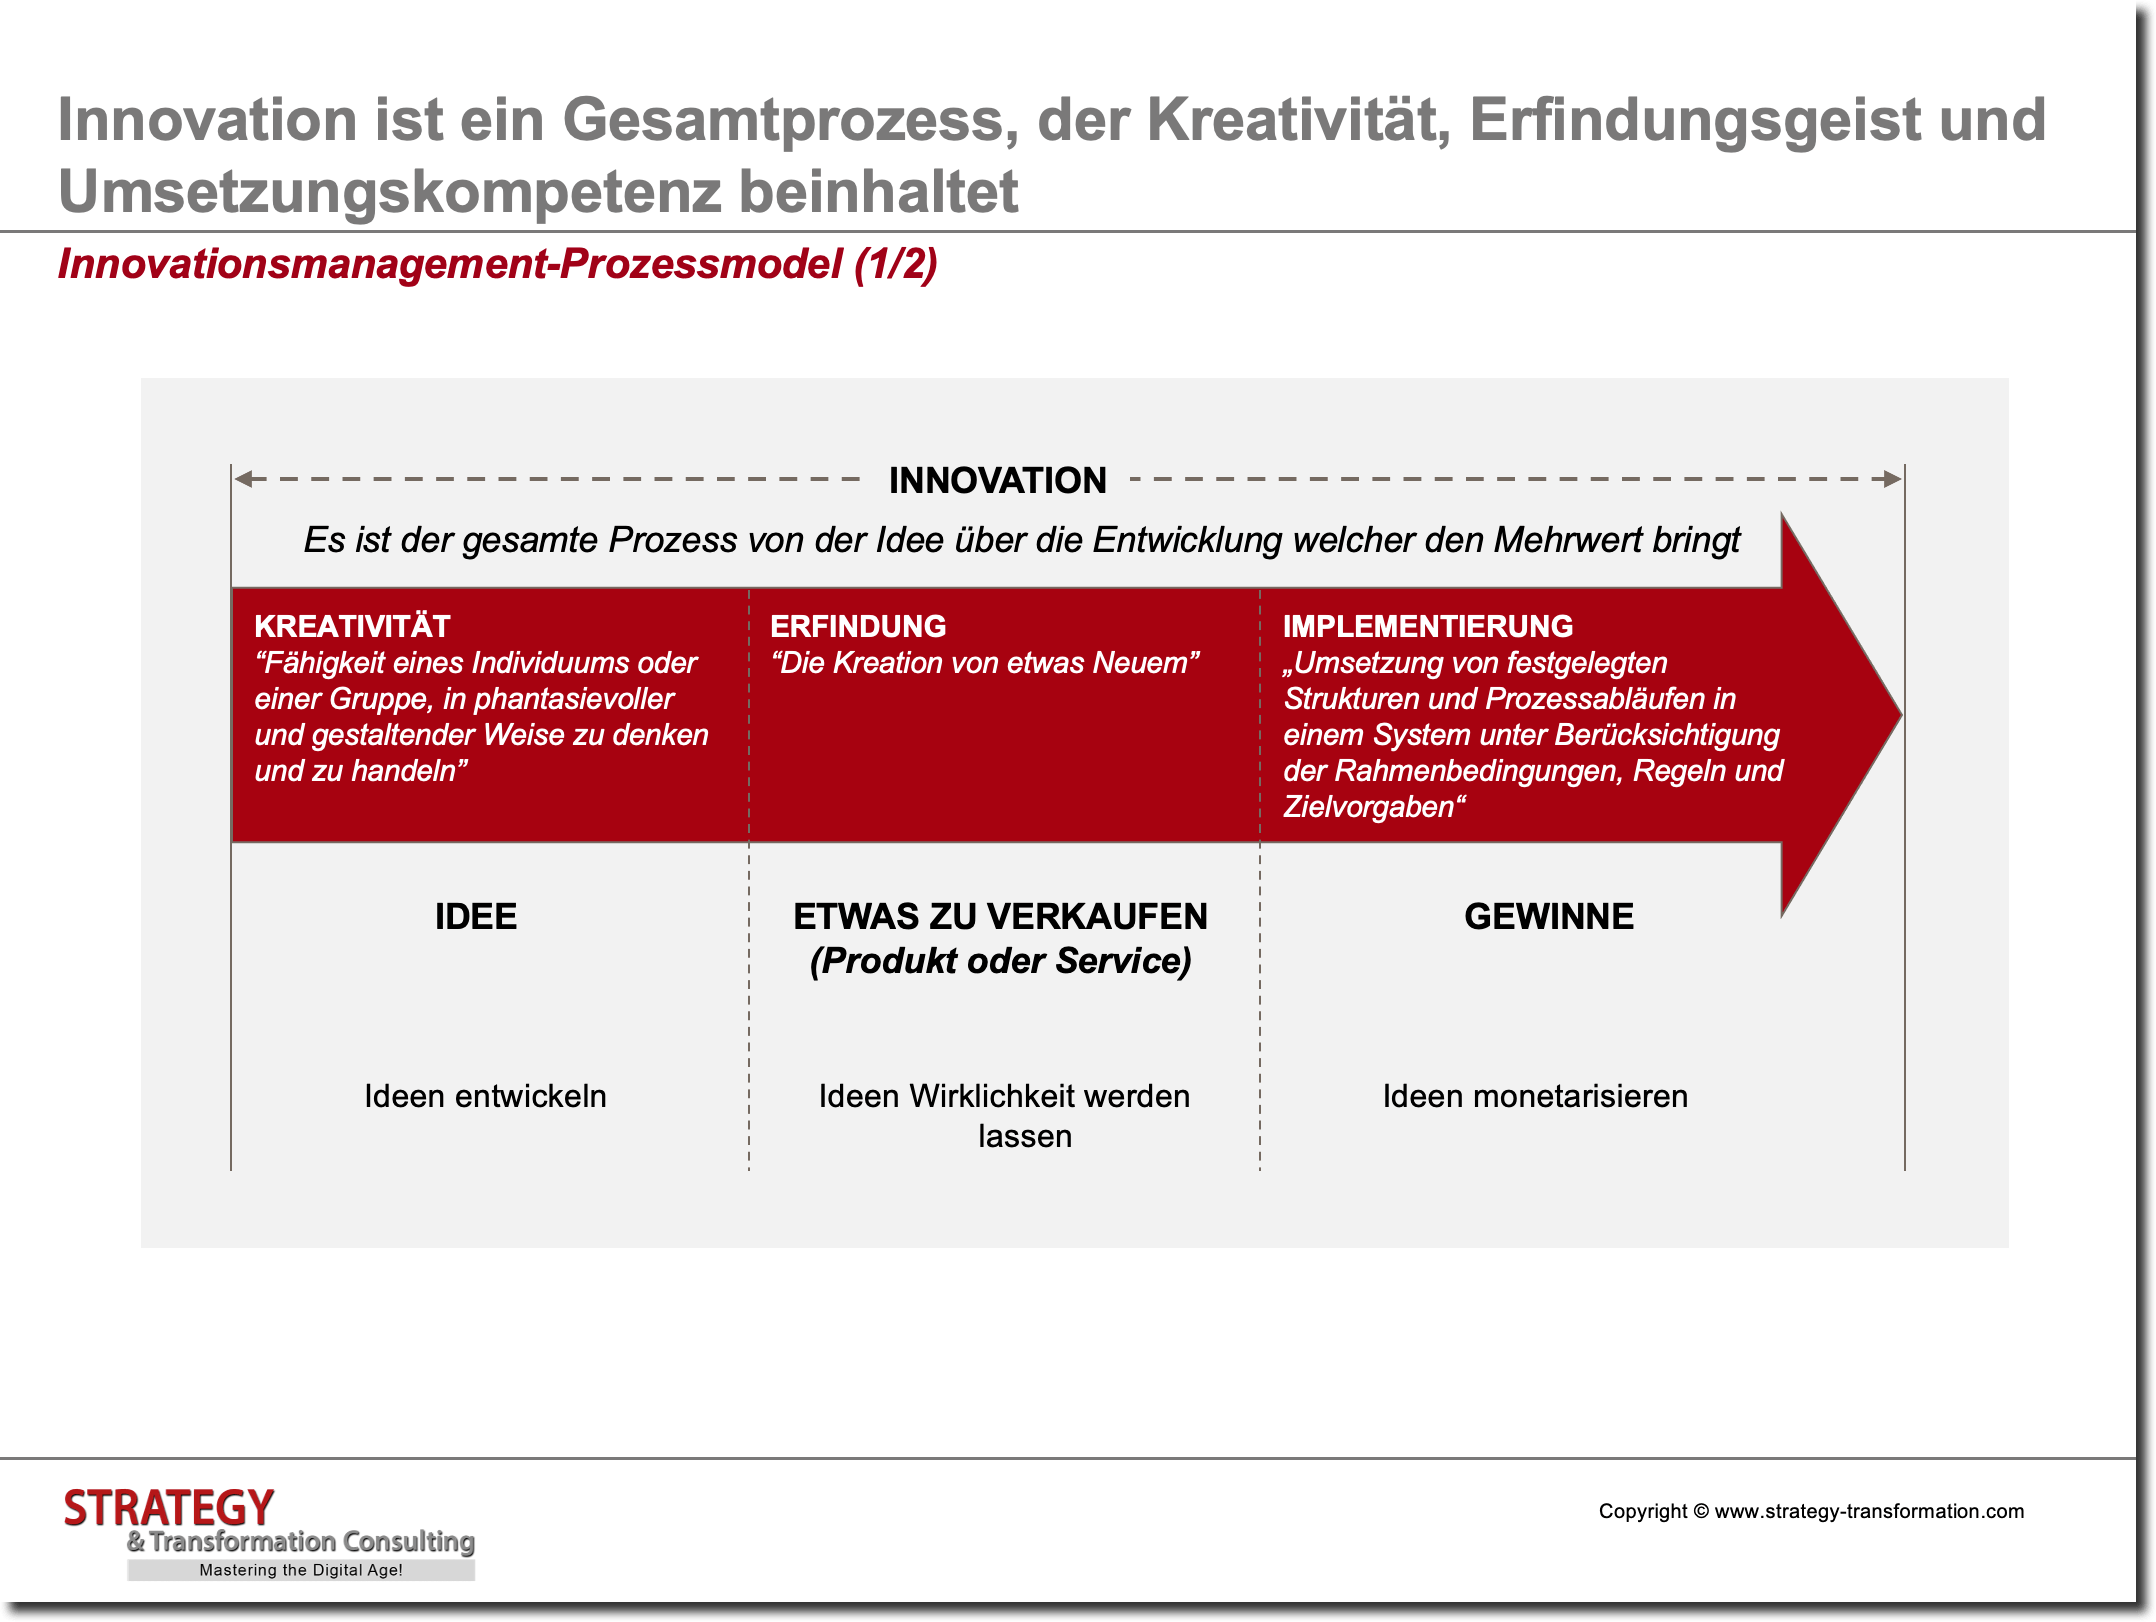 Innovationsmanagement_Prozessmodell_1 von 2